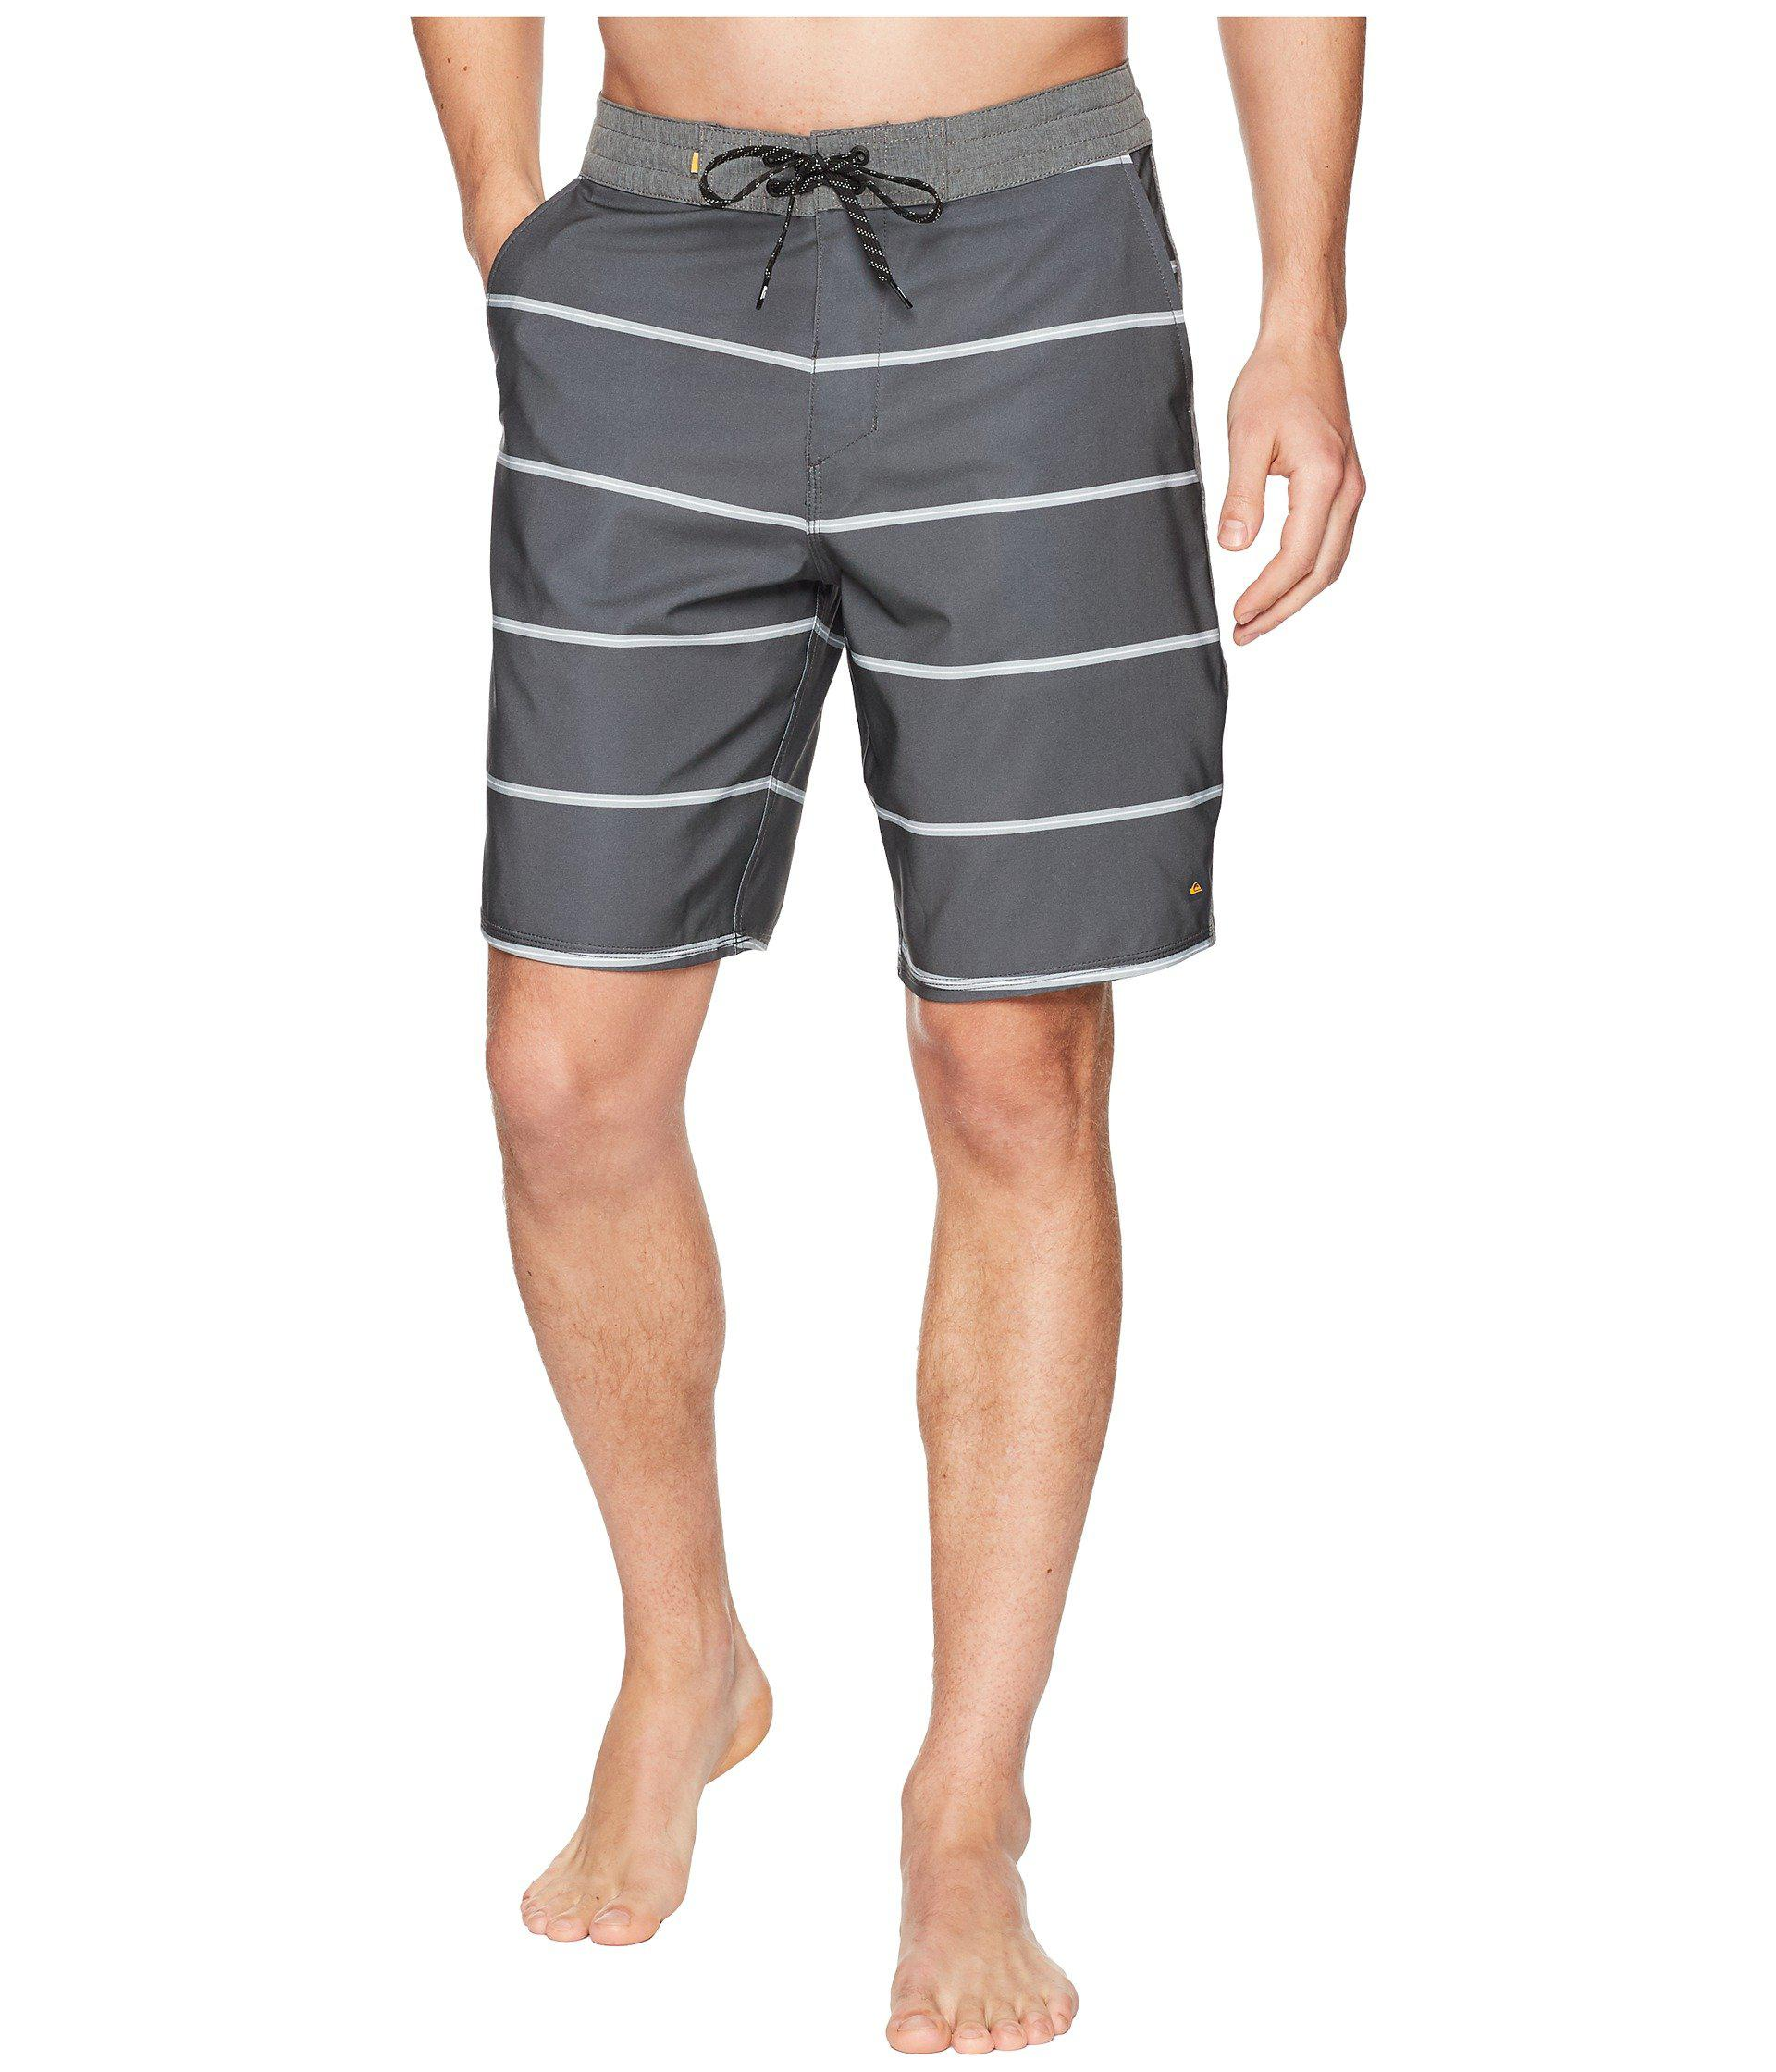 d1fb3362ed Lyst - Quiksilver Liberty Overboard Boardshorts in Gray for Men ...